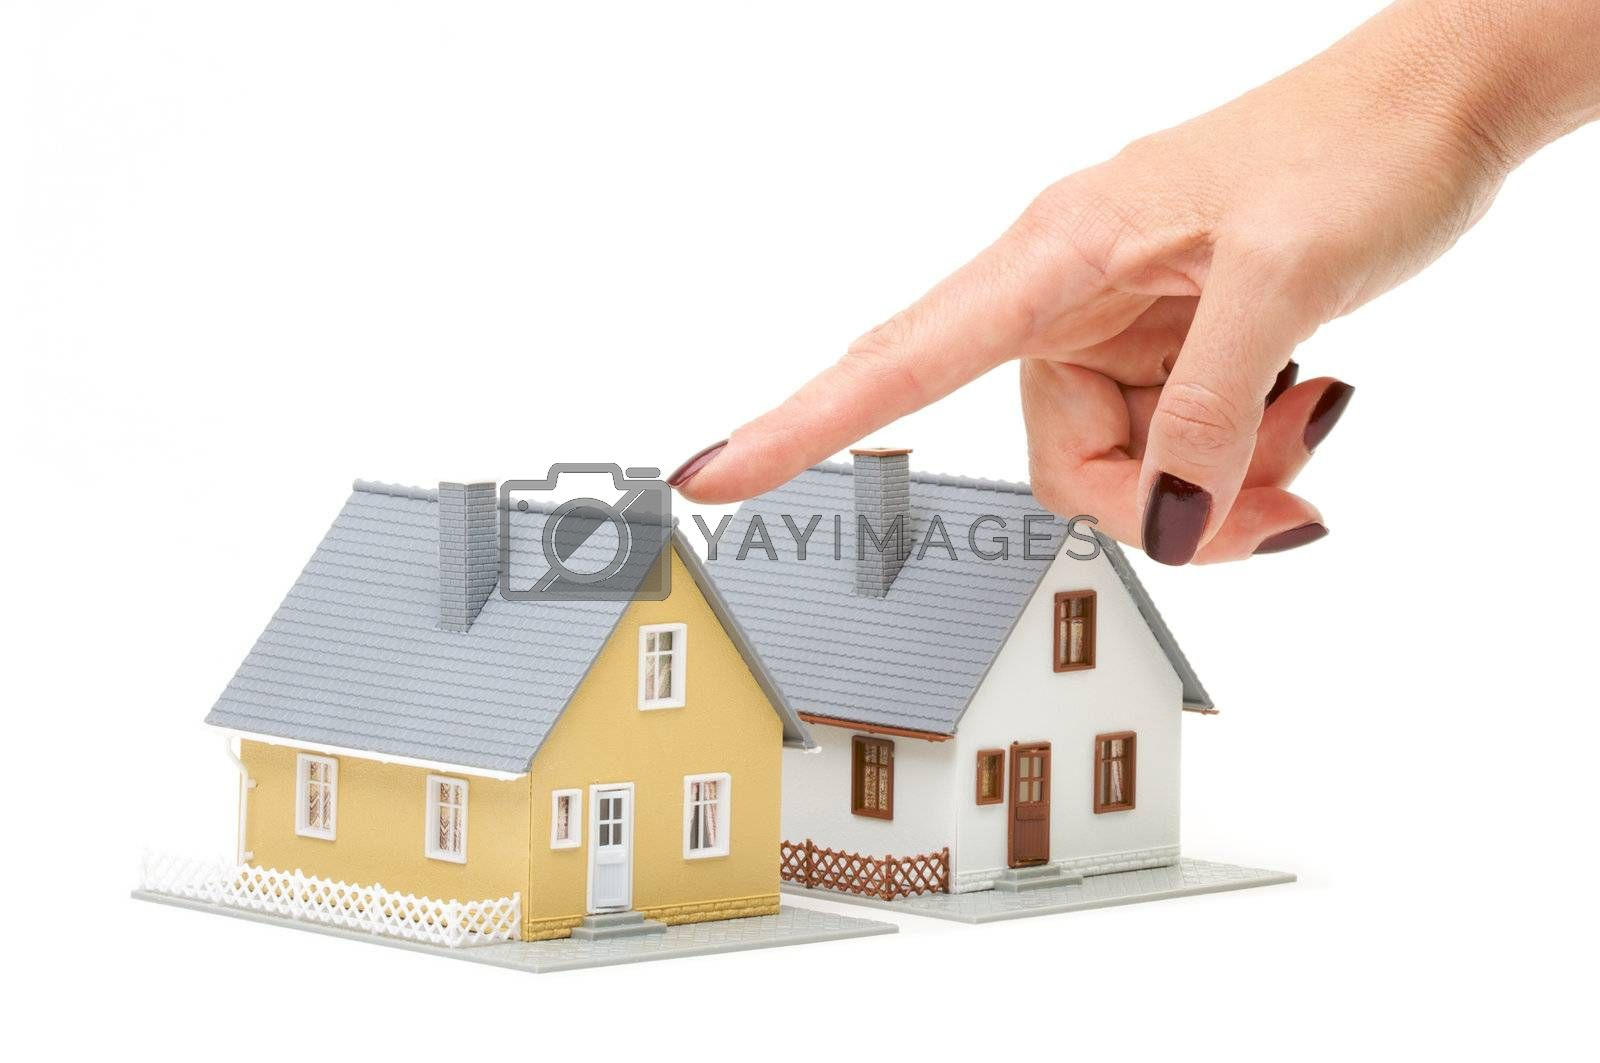 Female hand pointing at a house isolated on a white background.